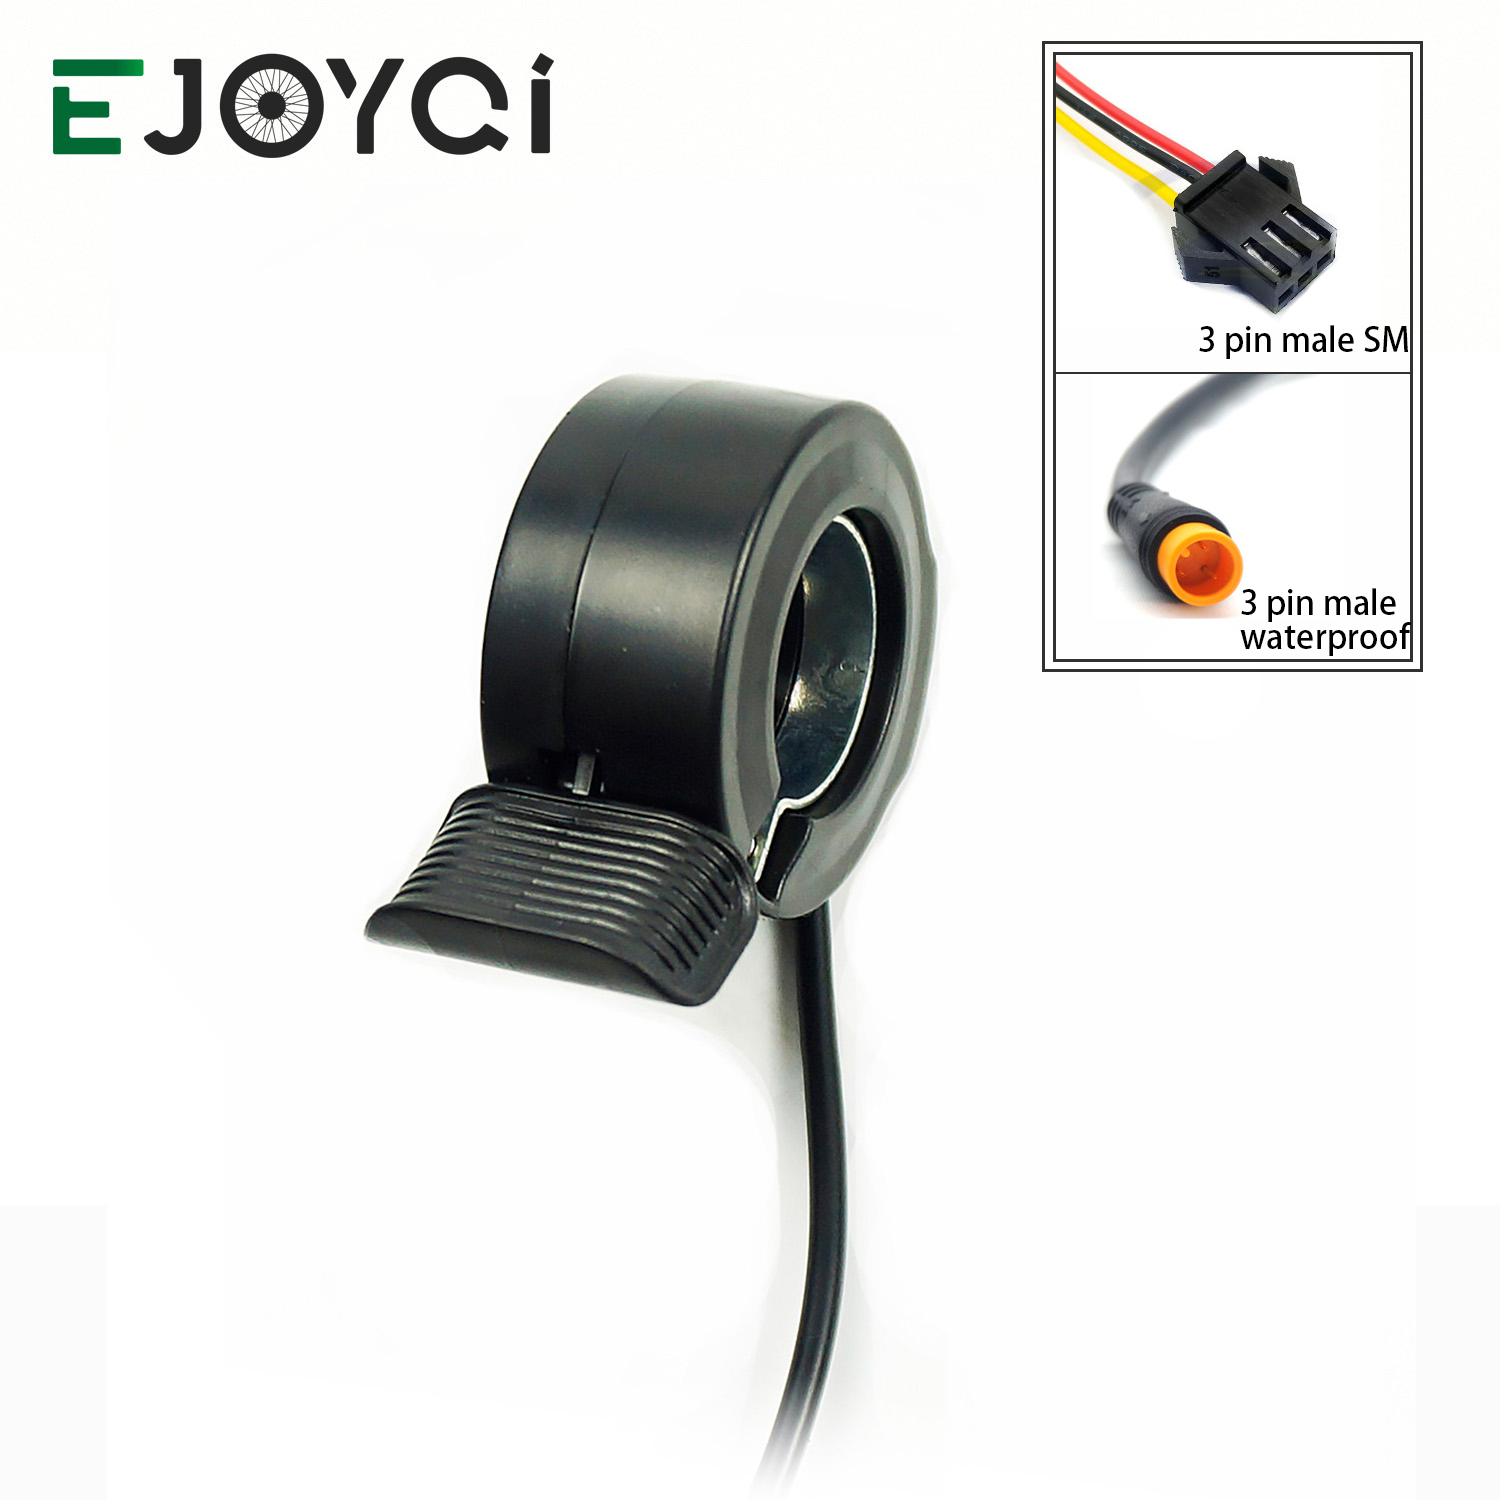 EJOYQI Wuxing E-bike 130X Thumb Throttle For 24V / 36V / 48V / 60V / 72V Ebike  SM Waterproof Wuxing Brand FREE SHIPPING